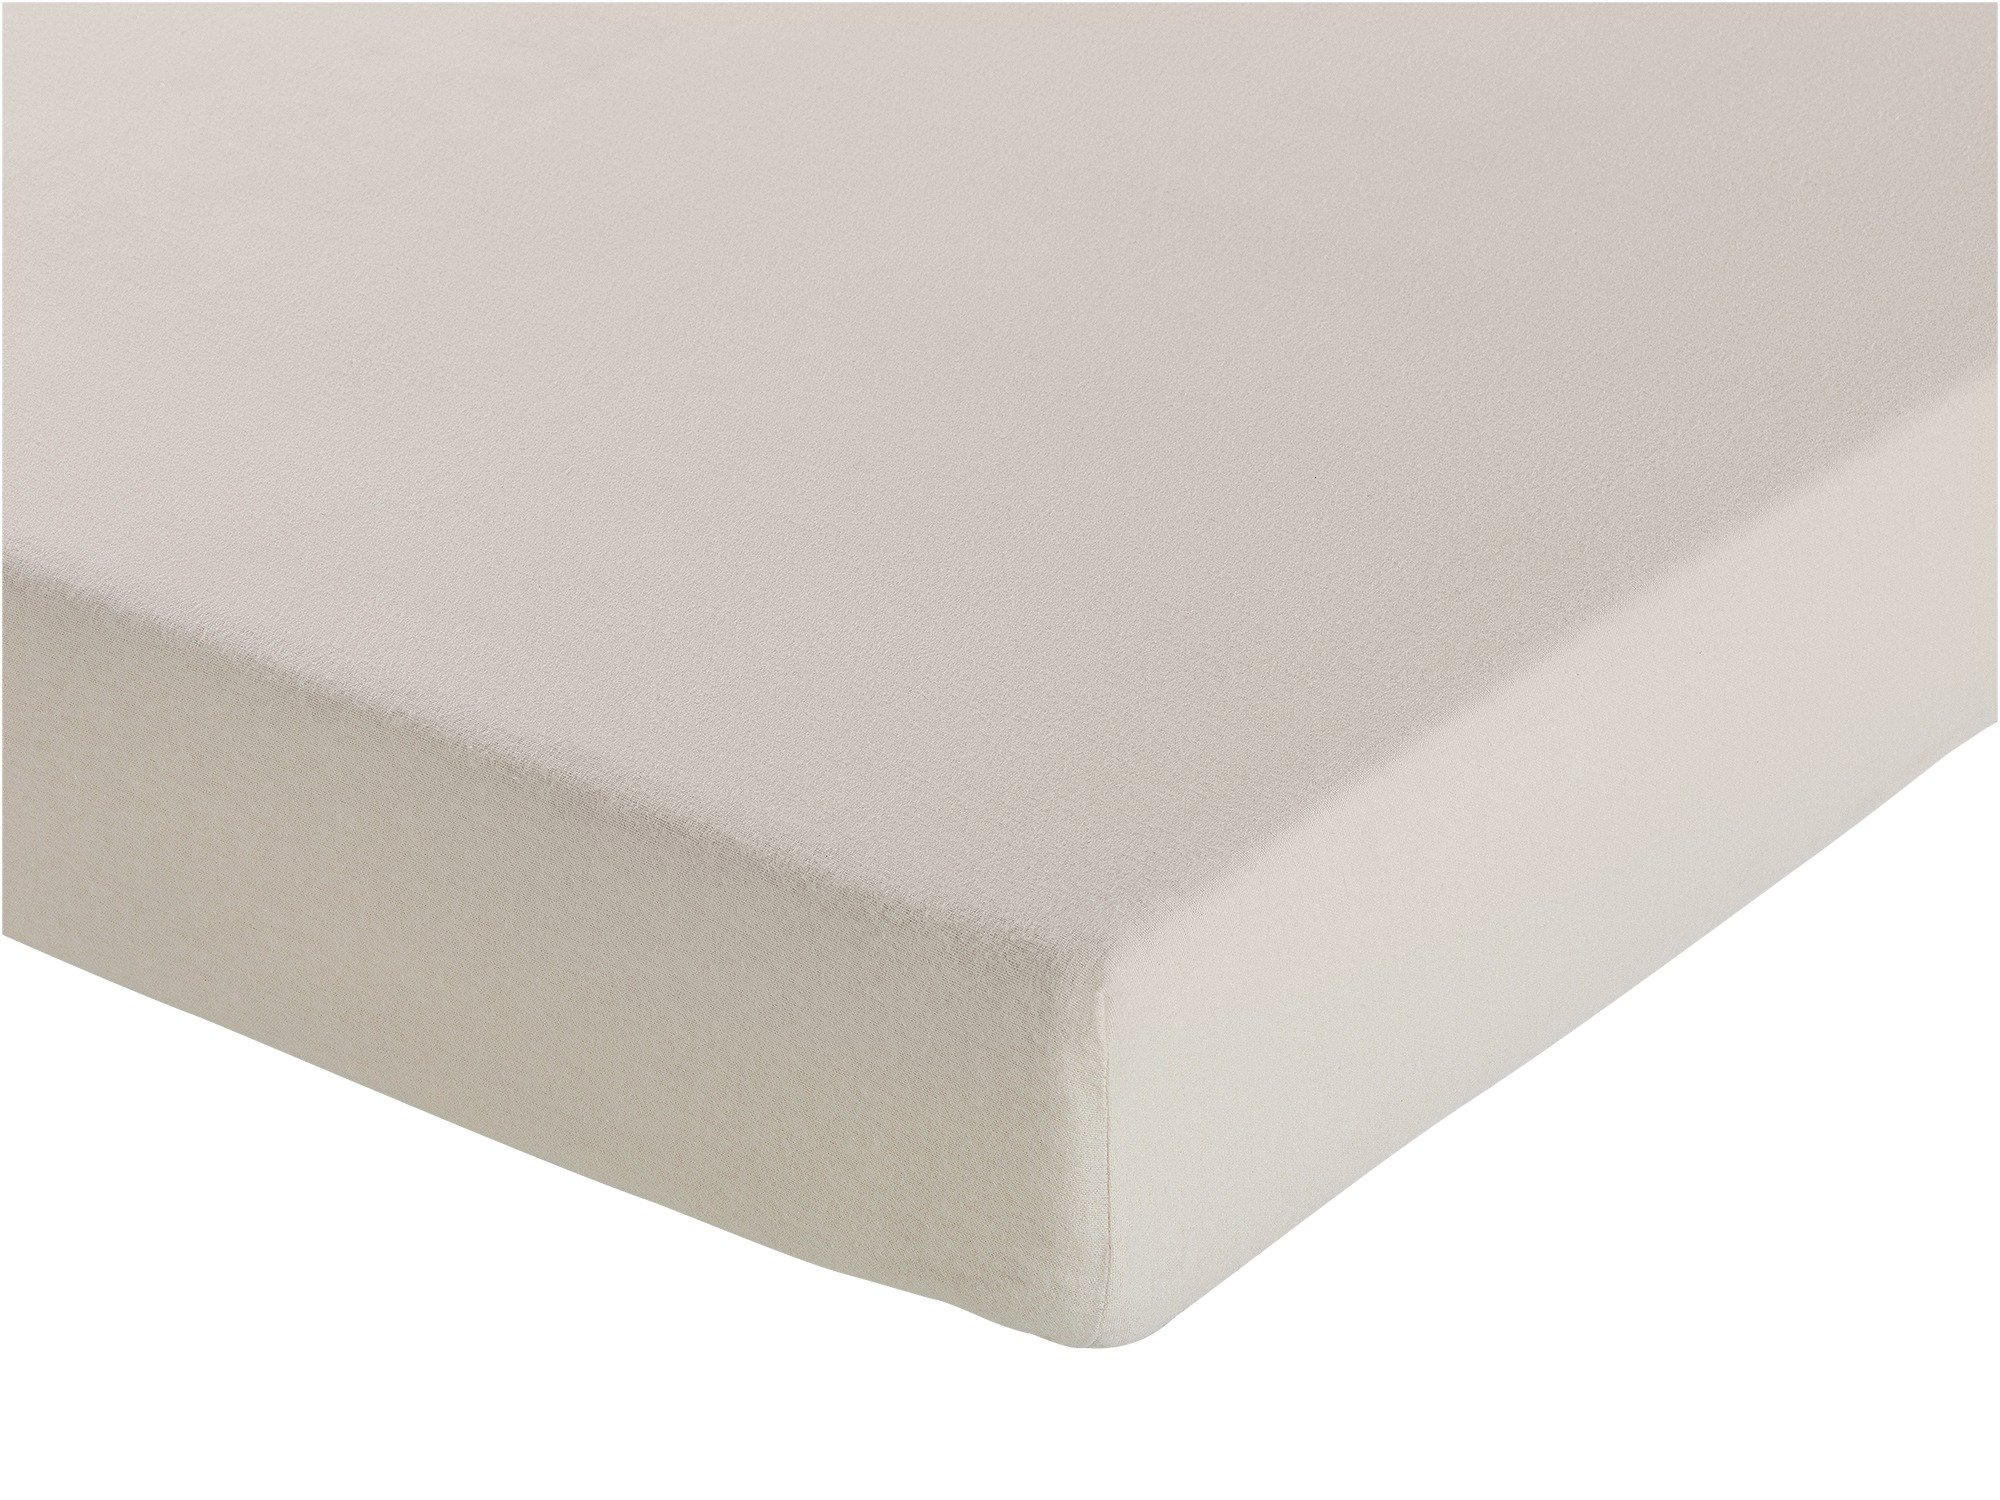 Collection - Cream Brushed Cotton Fitted - Sheet - Double